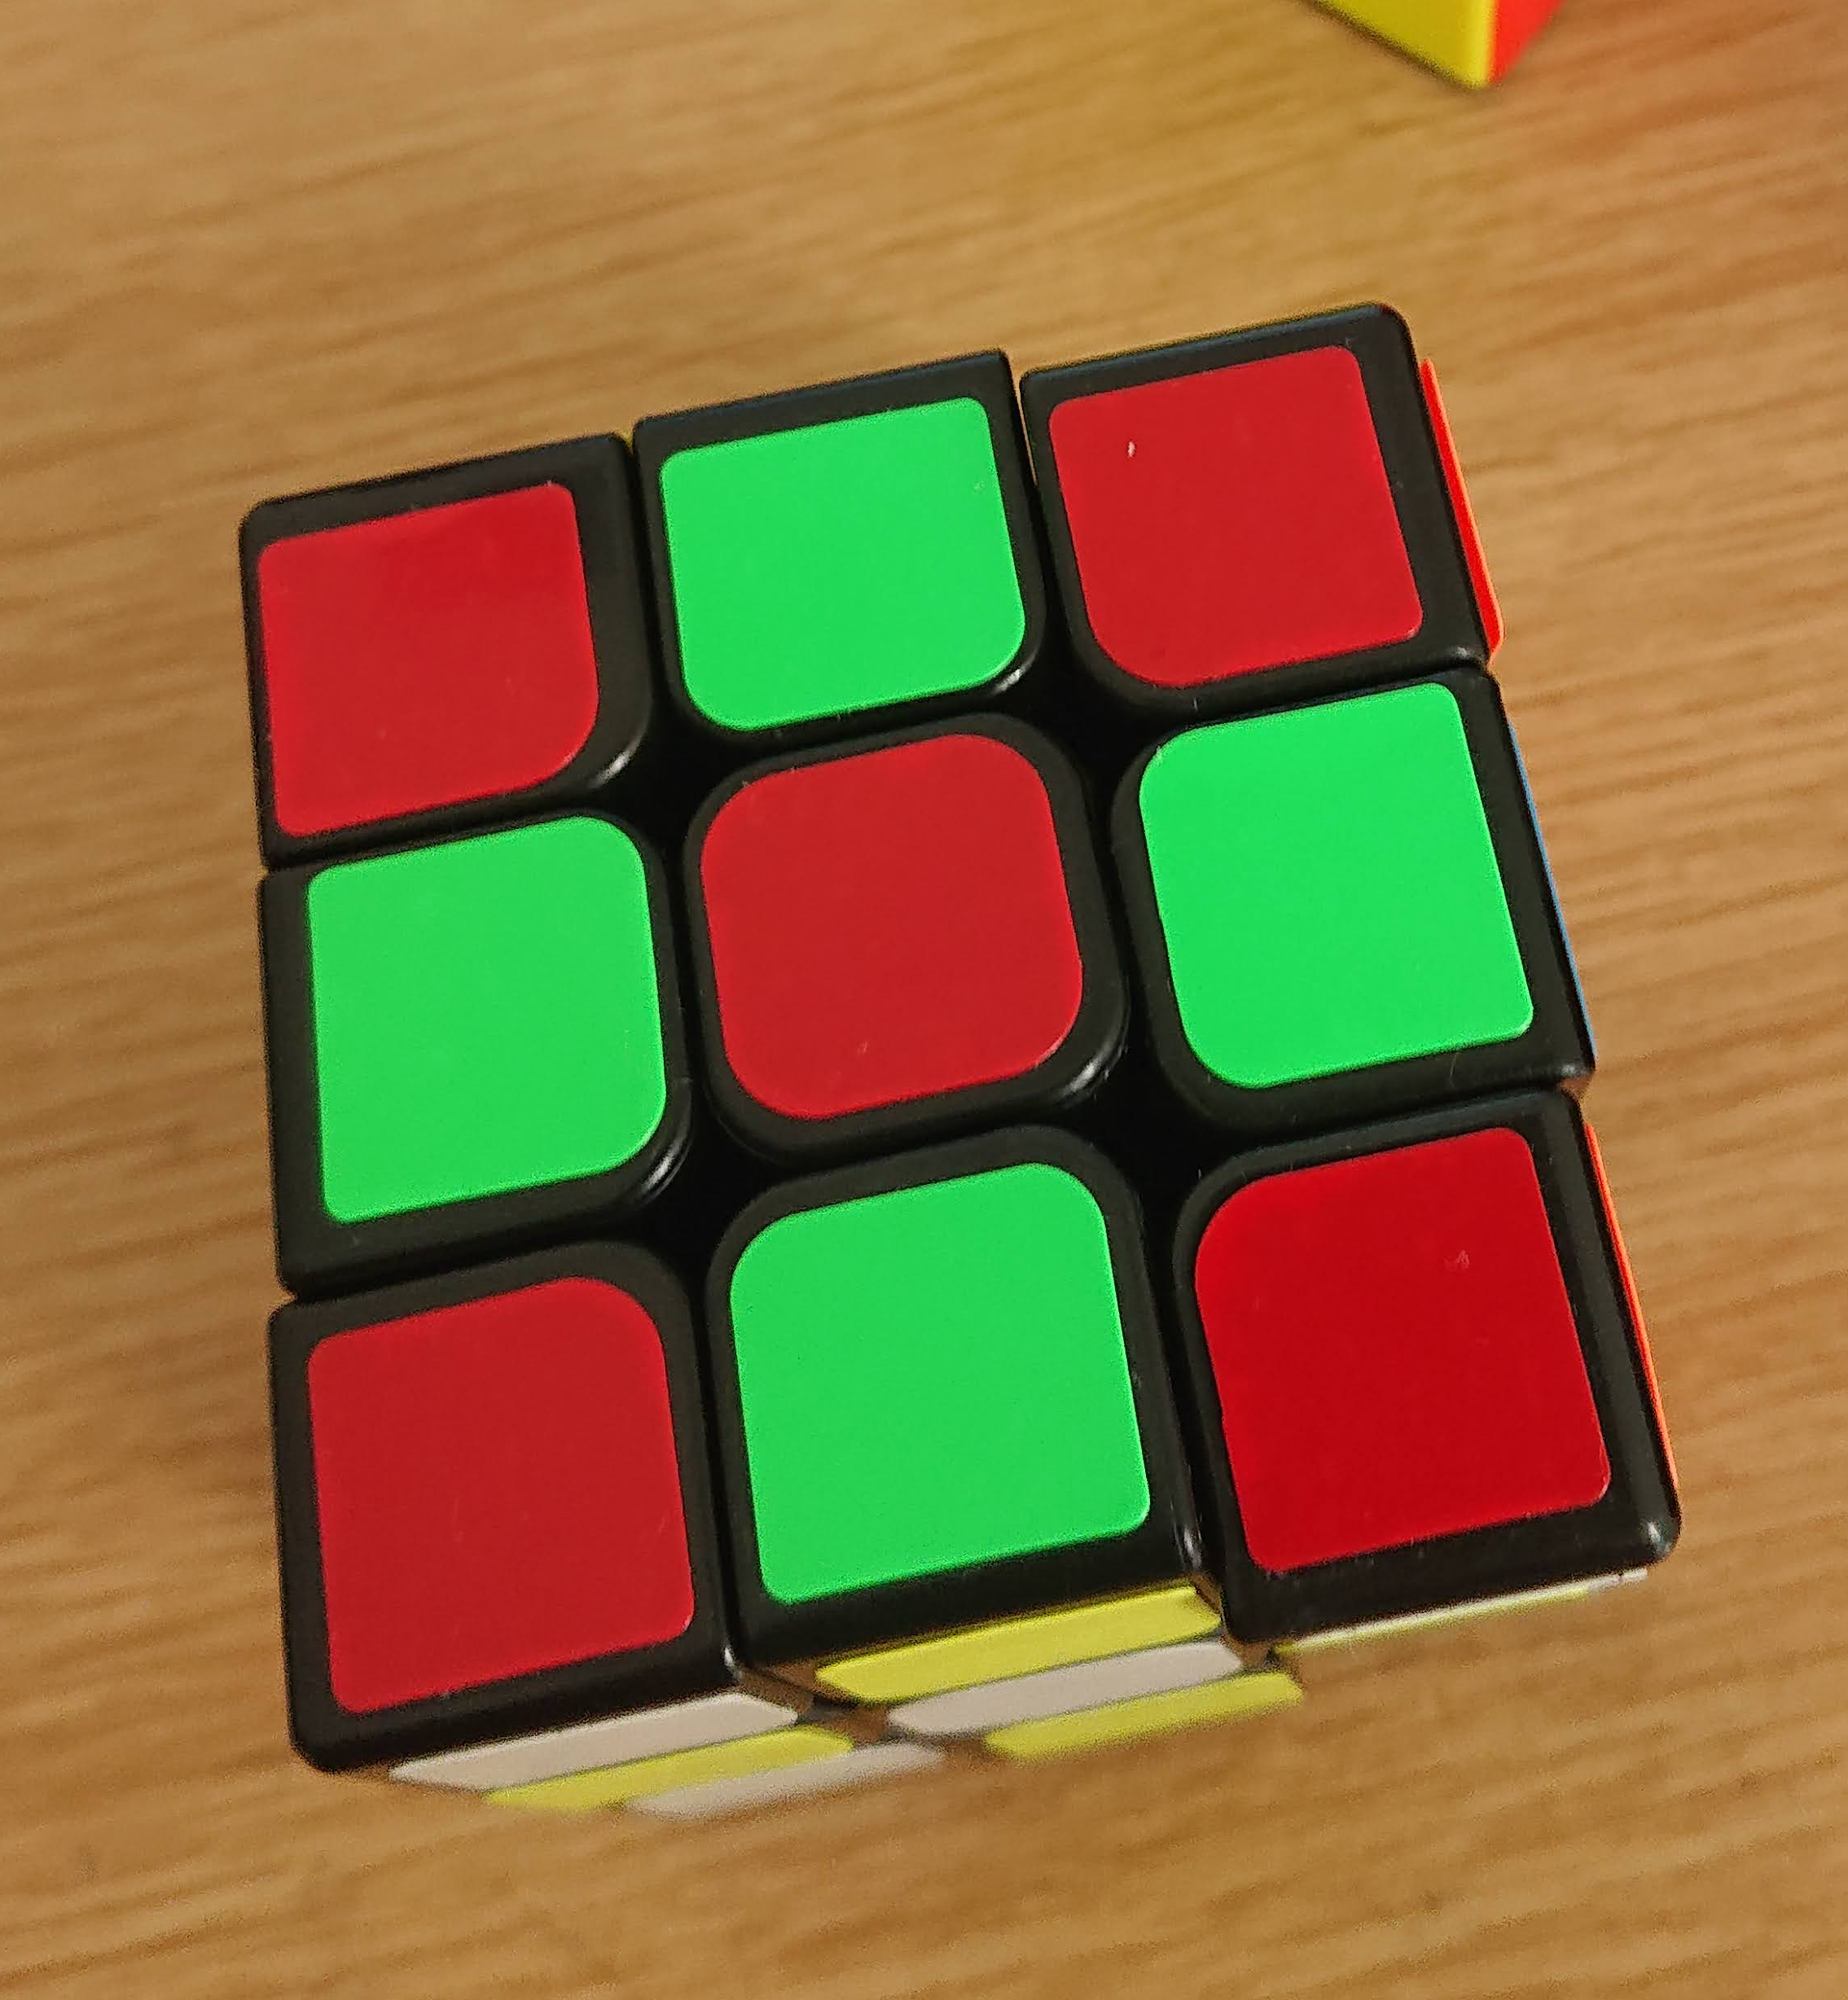 A wrongly coloured Rubiks cube in the flower pattern: red and green